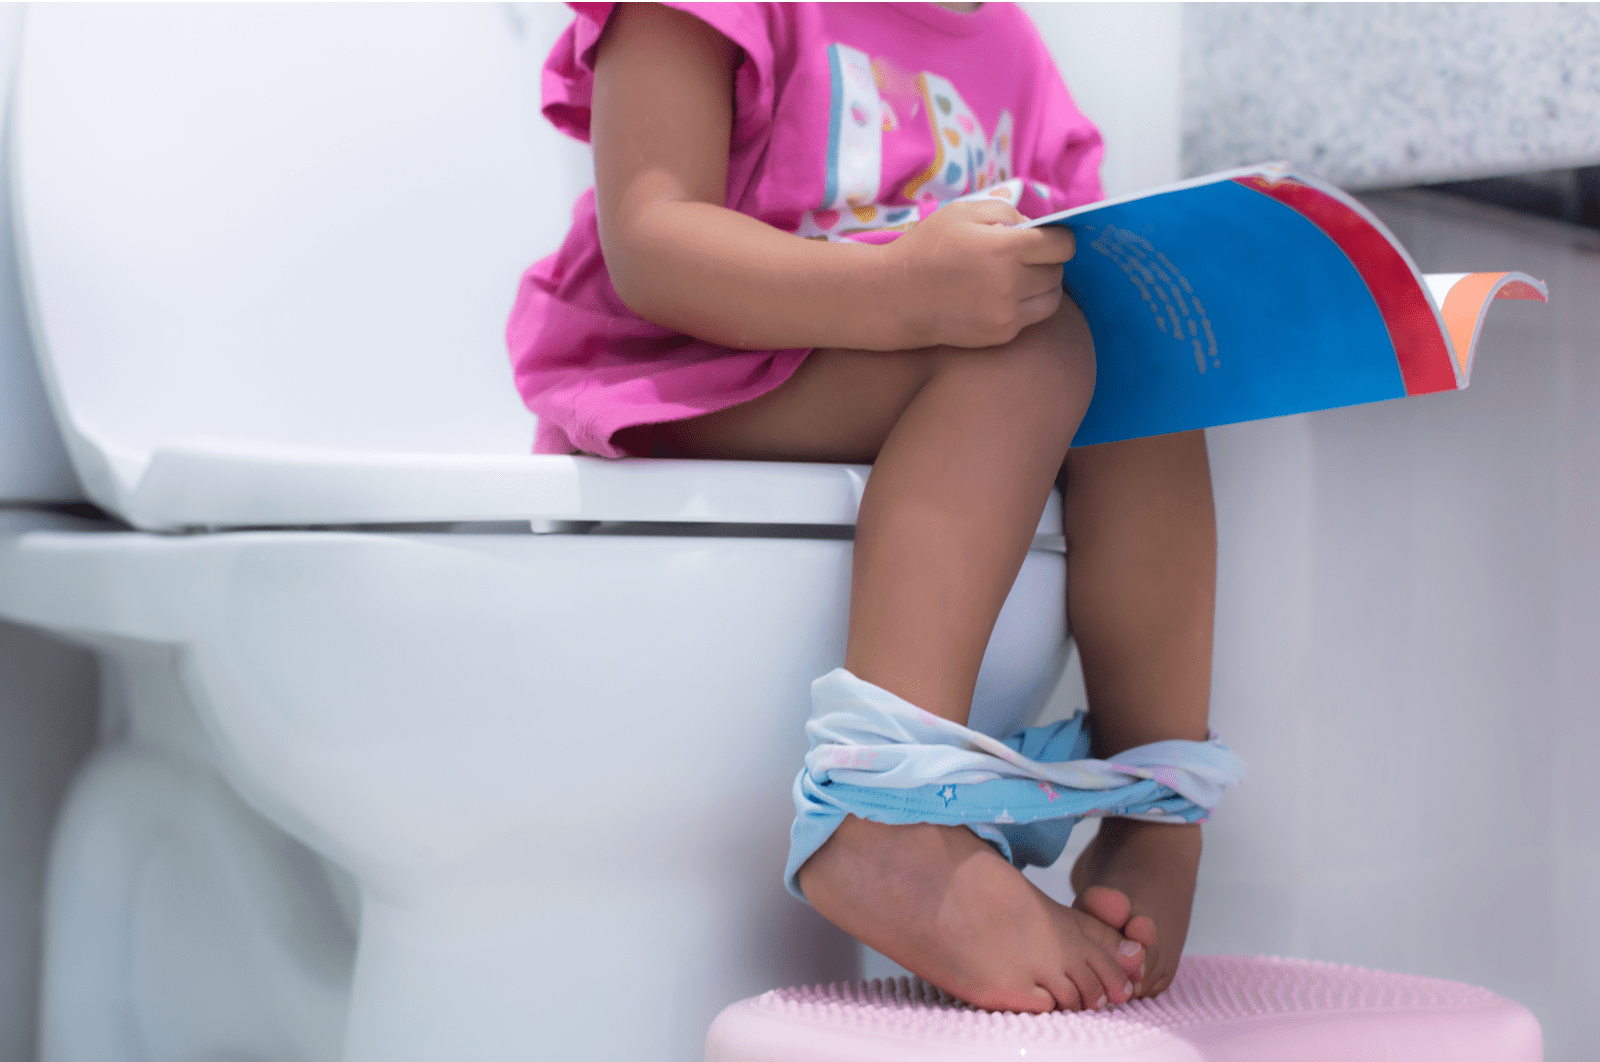 How To Potty Train A Girl Fast: My Secret Method